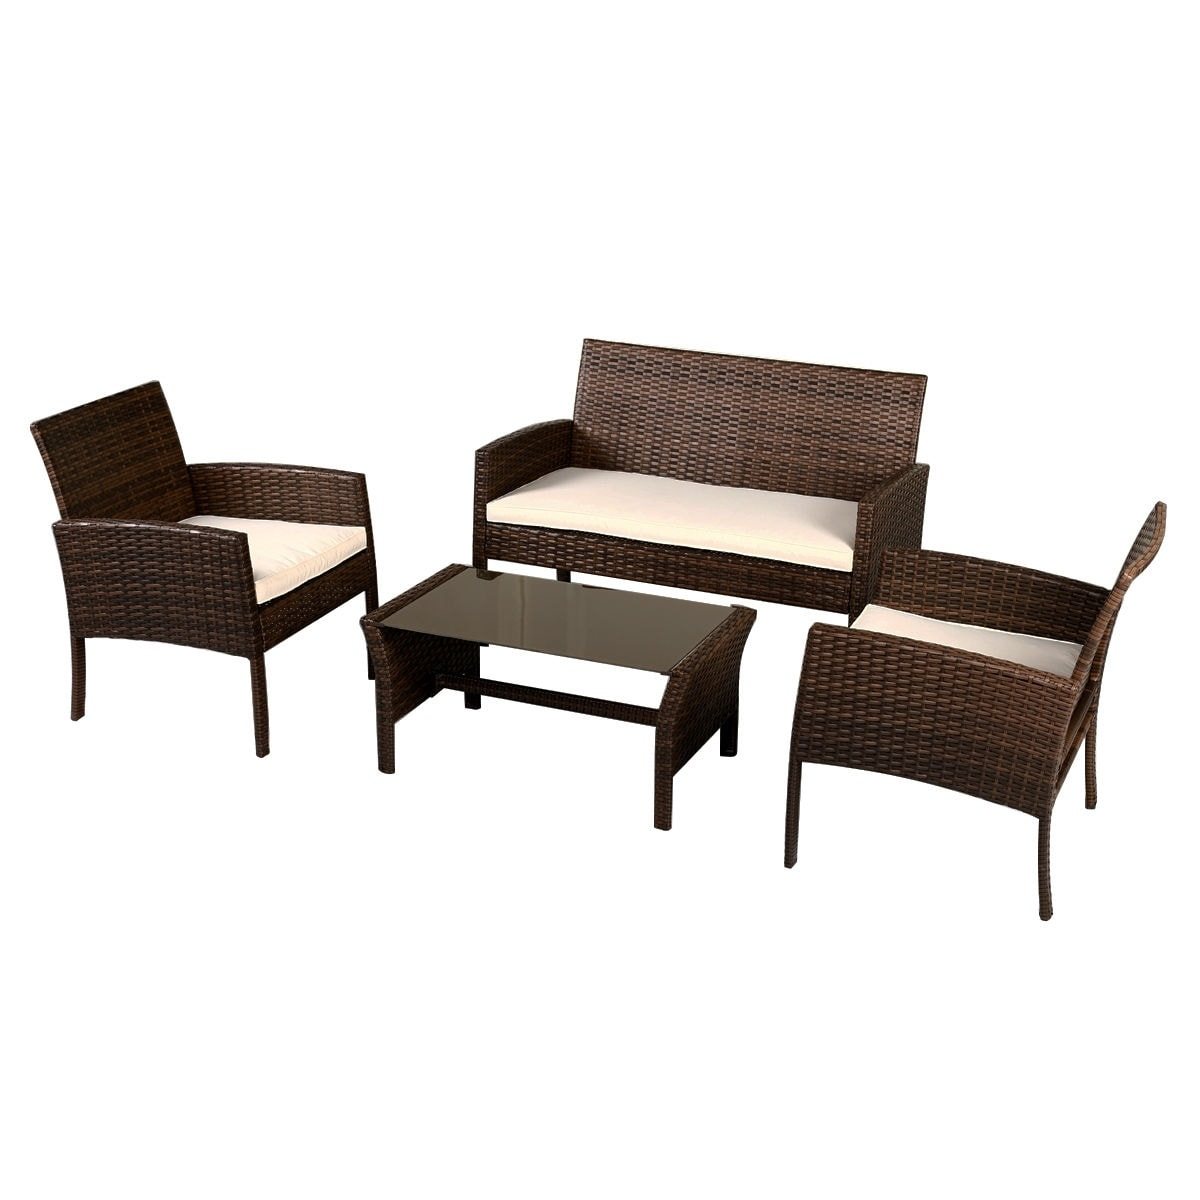 Shop Costway 4 Pieces Patio Furniture Wicker Rattan Sofa Set Garden Coffee  Table   Free Shipping Today   Overstock.com   16954761